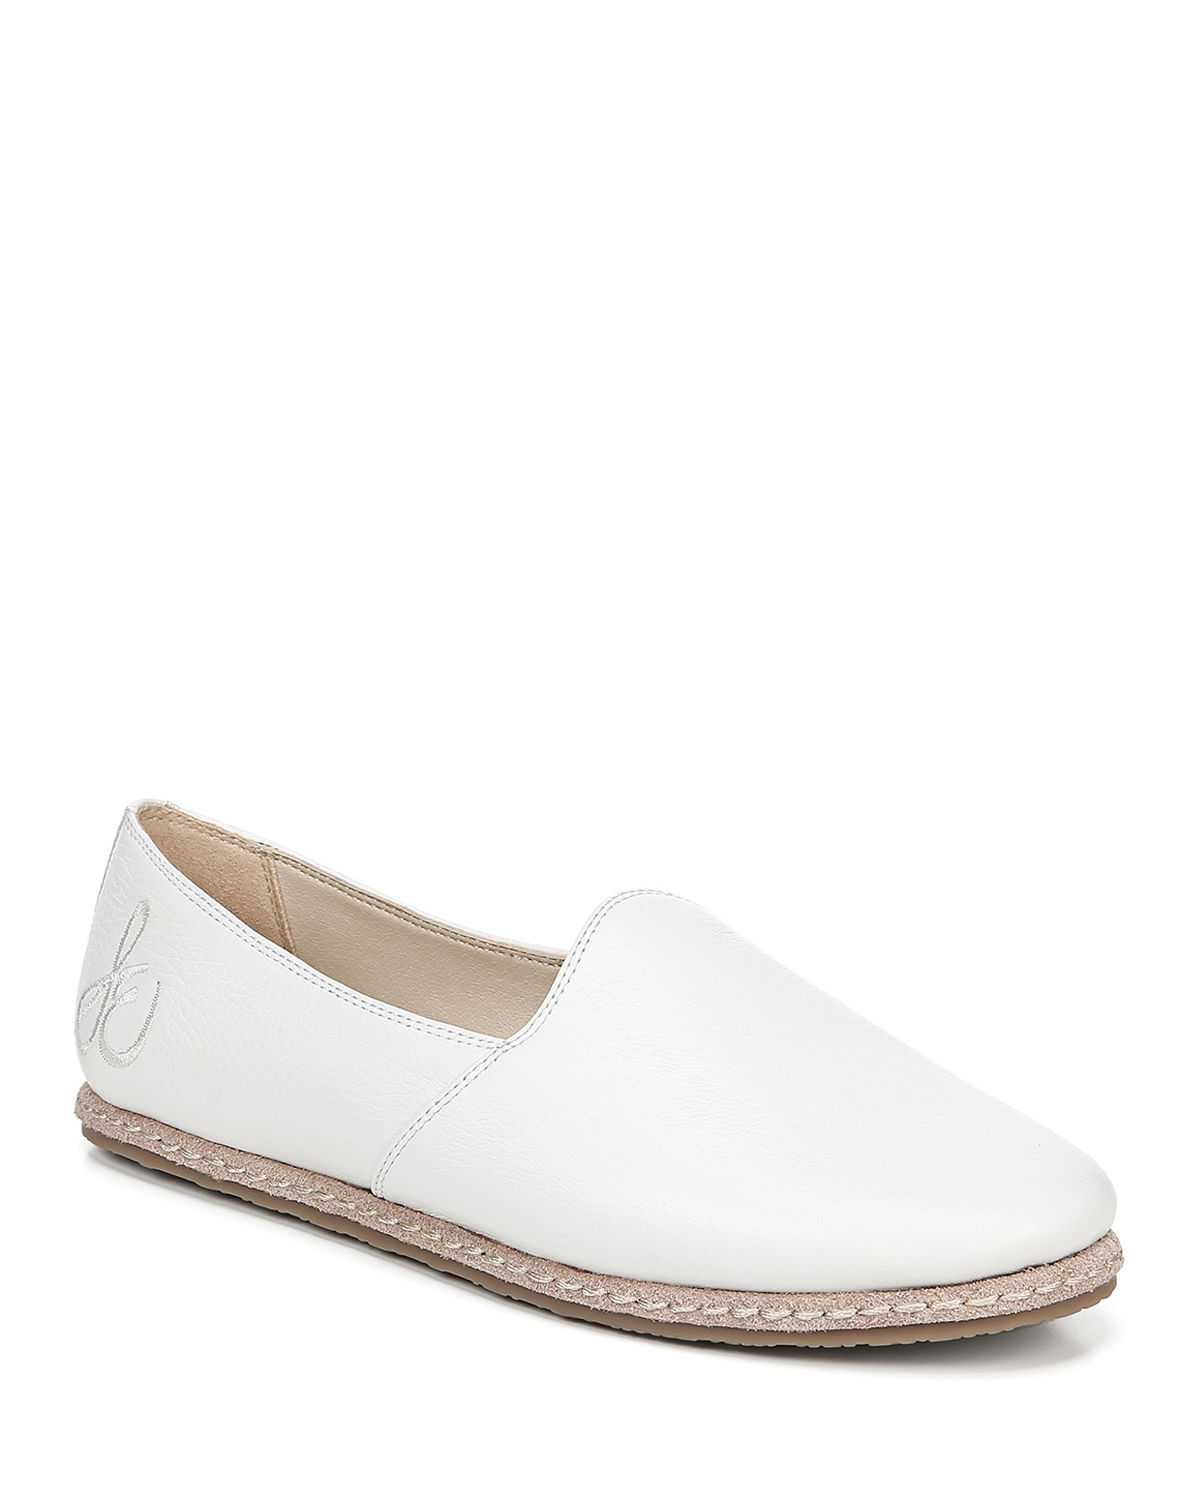 b0af2a9a352 Sam Edelman Women s Everie Leather Slipper Loafers In Bright White ...